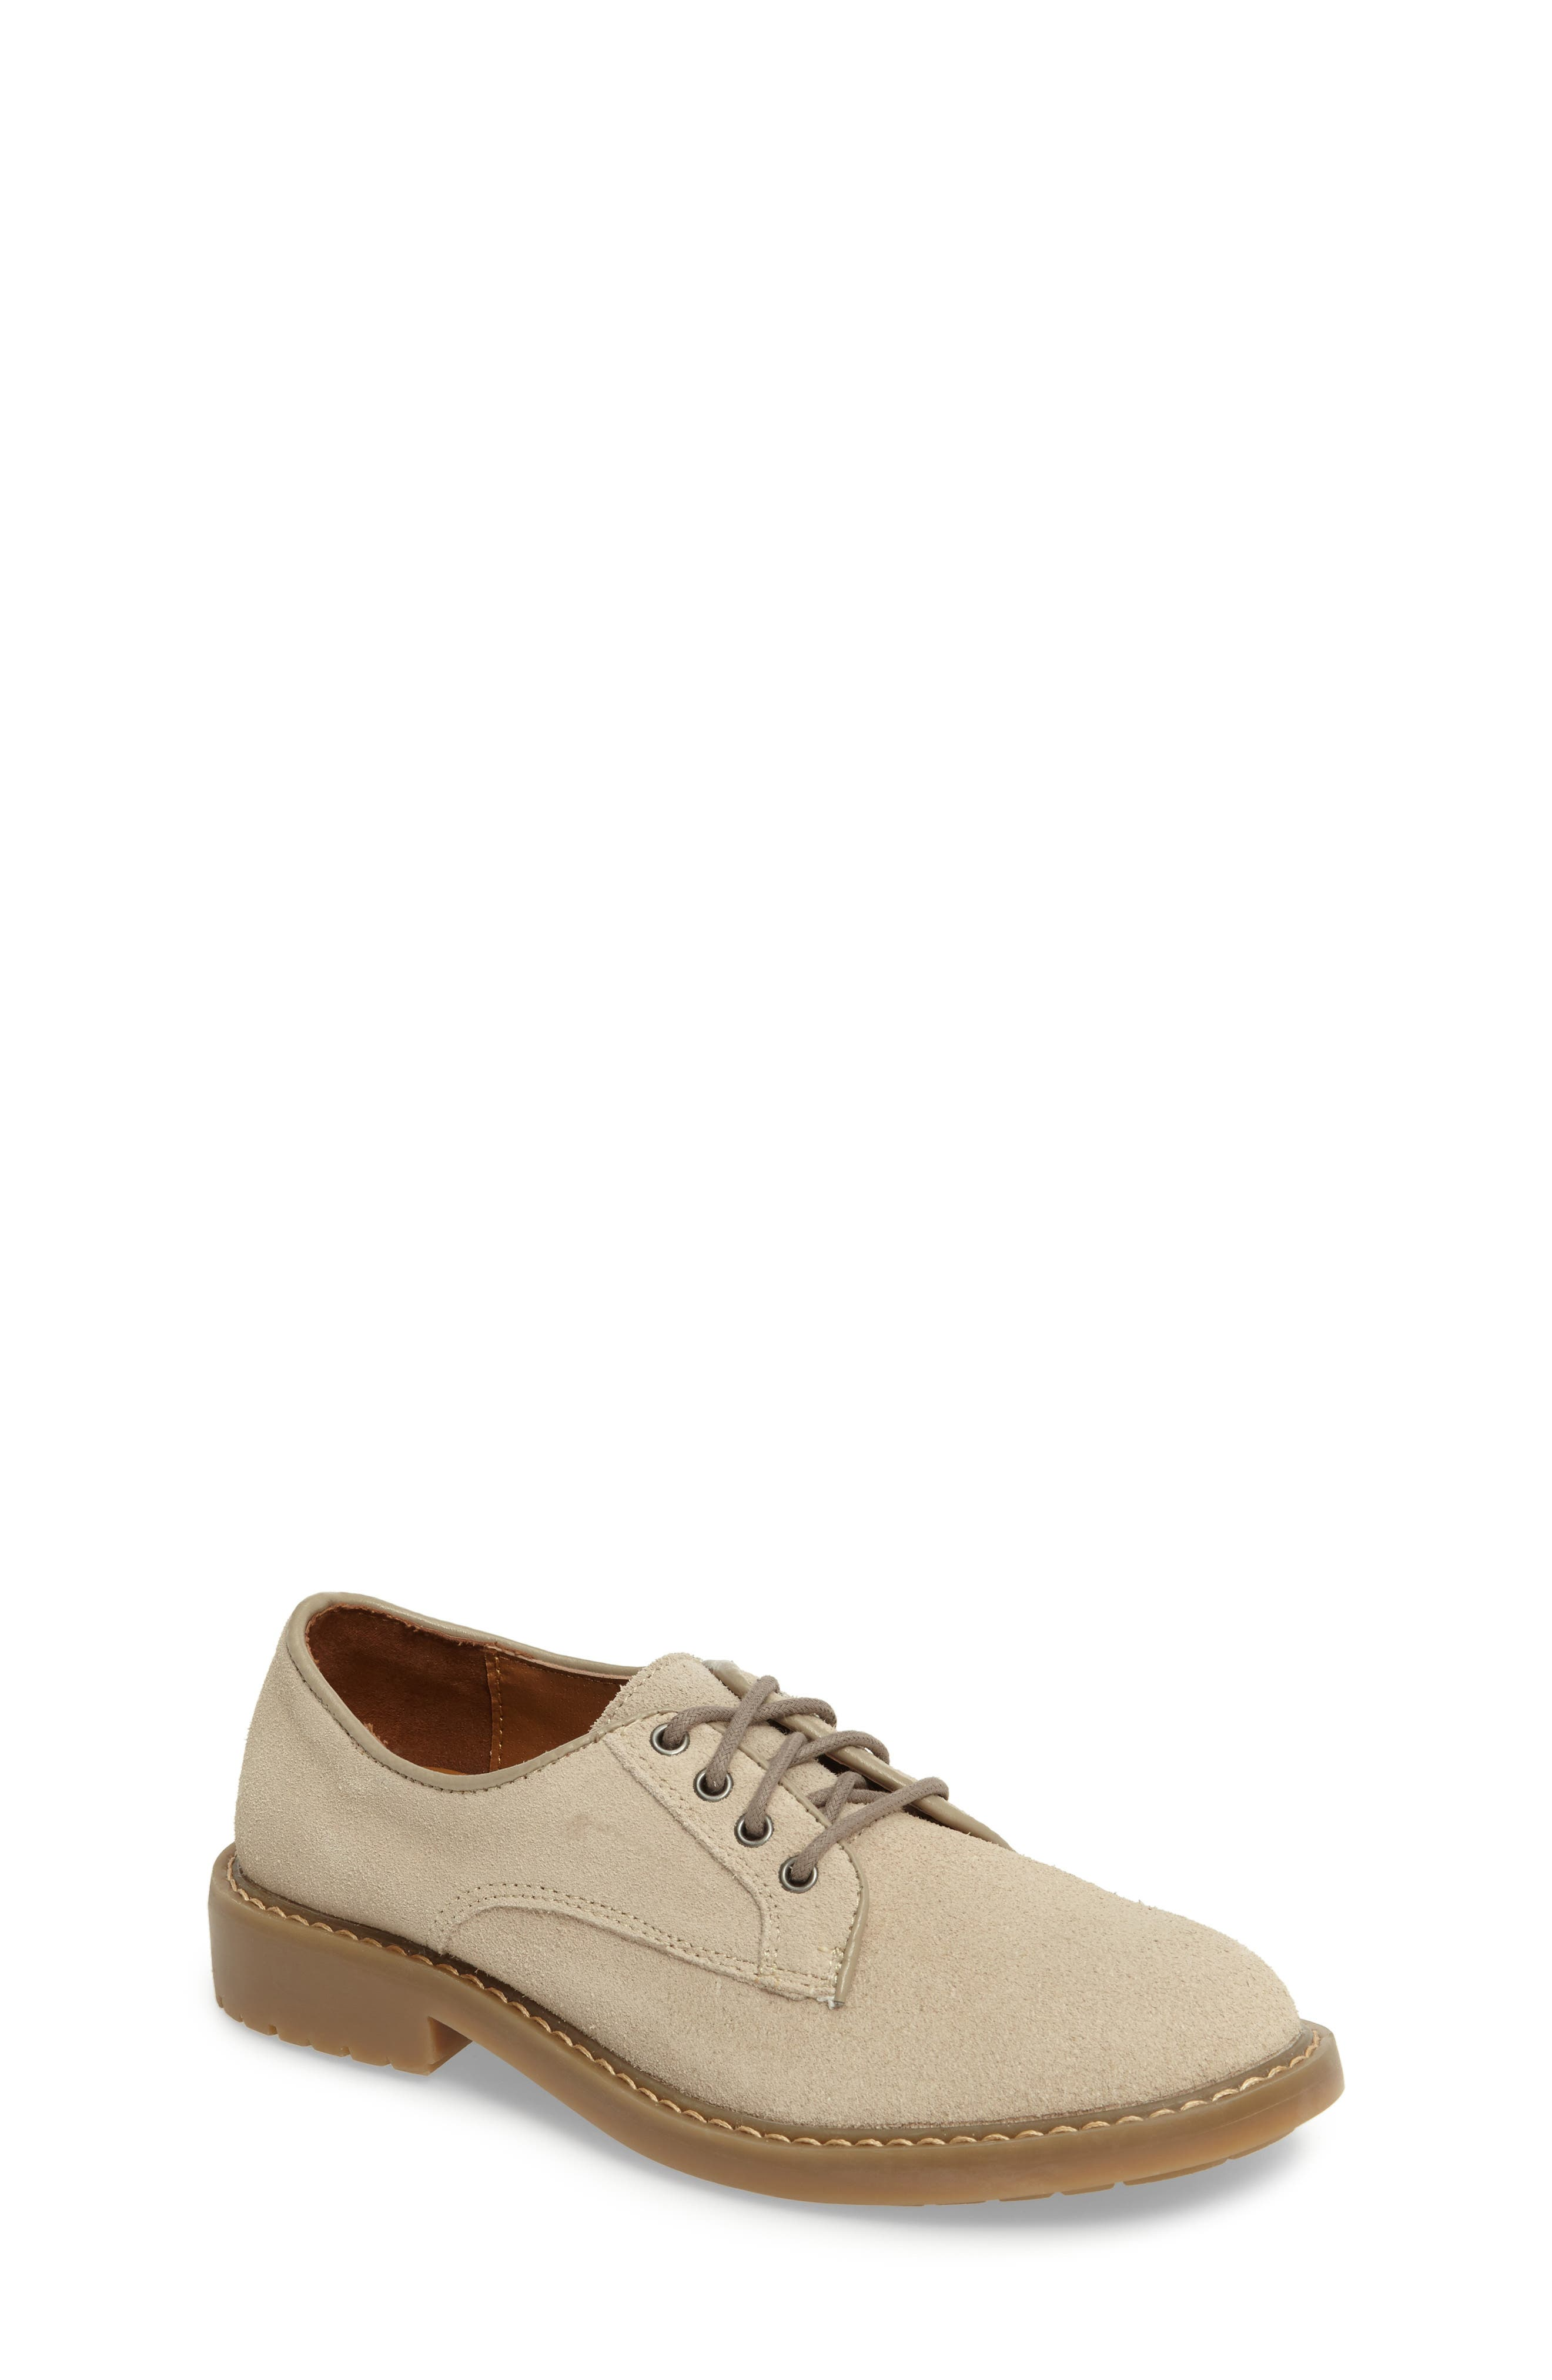 Alternate Image 1 Selected - Kenneth Cole New York Take Buck Oxford (Toddler, Little Kid & Big Kid)